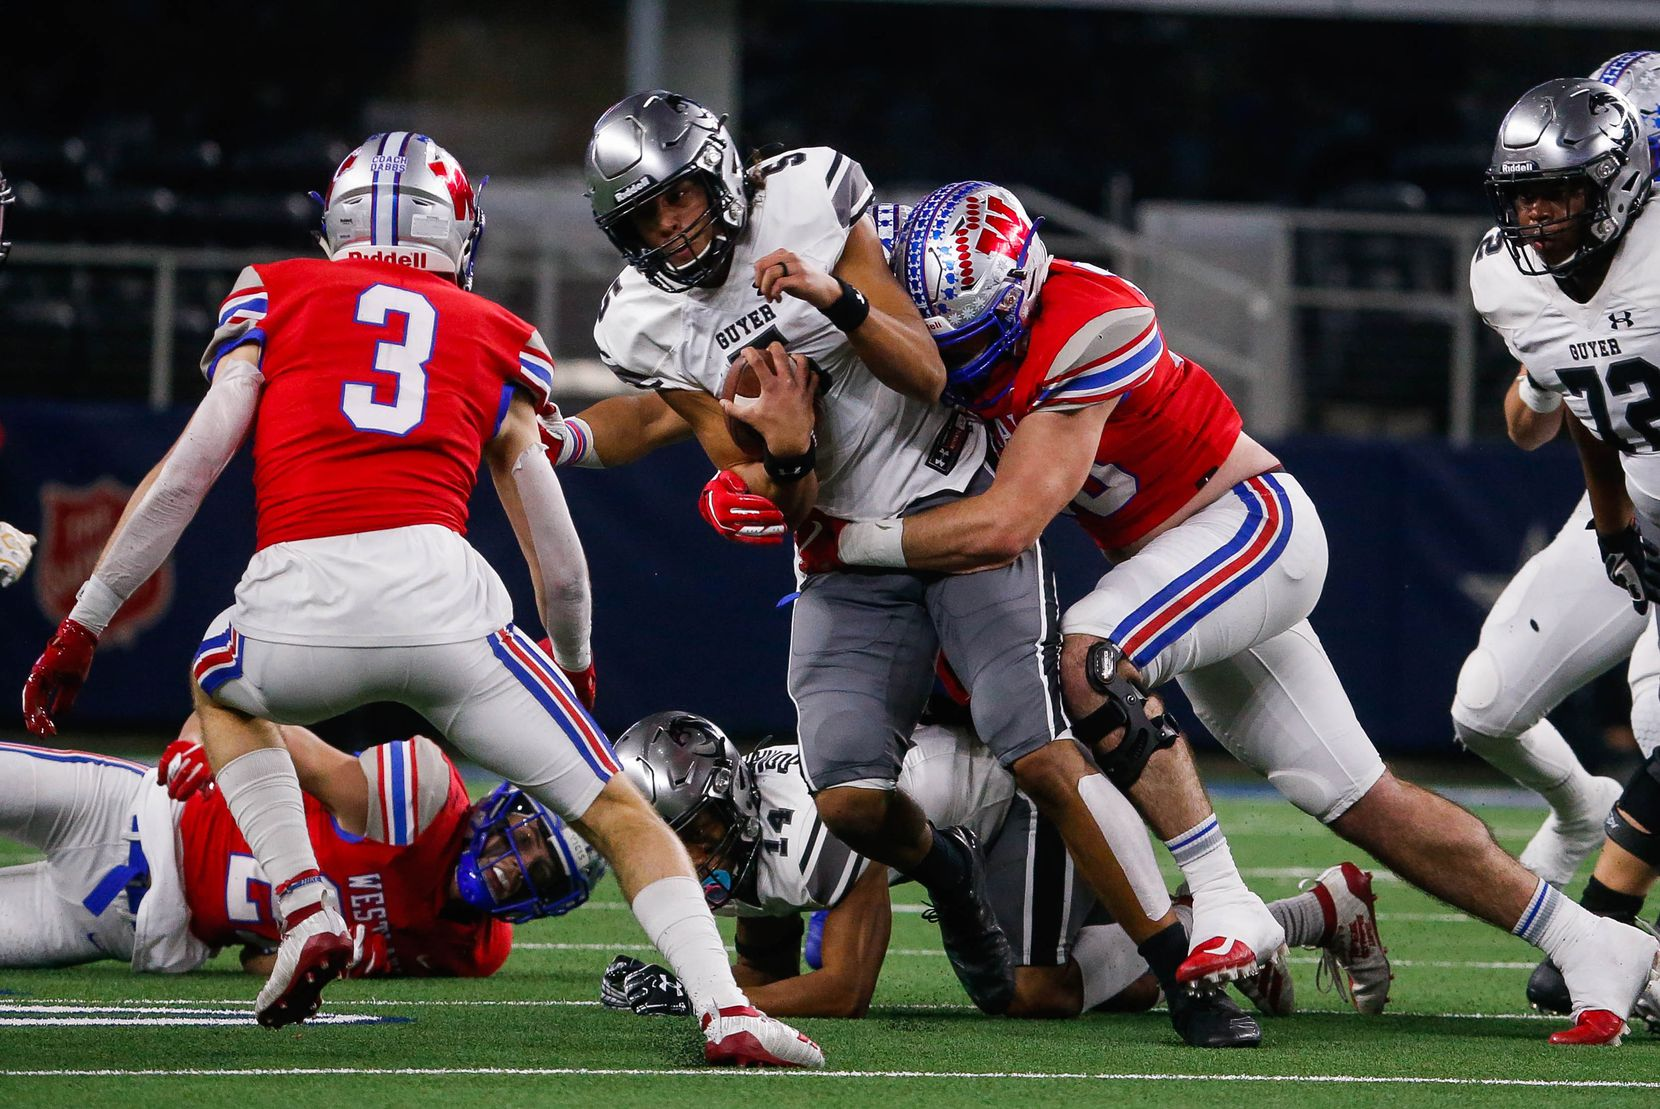 Denton Guyer's quarterback Eli Stowers (5) gets taken down by Austin Westlake's defense in the first quarter of a Class 6A Division II state championship game at the AT&T Stadium in Arlington, on Saturday, December 21, 2019. Westlake leads at halftime 14-0. (Juan Figueroa/The Dallas Morning News)